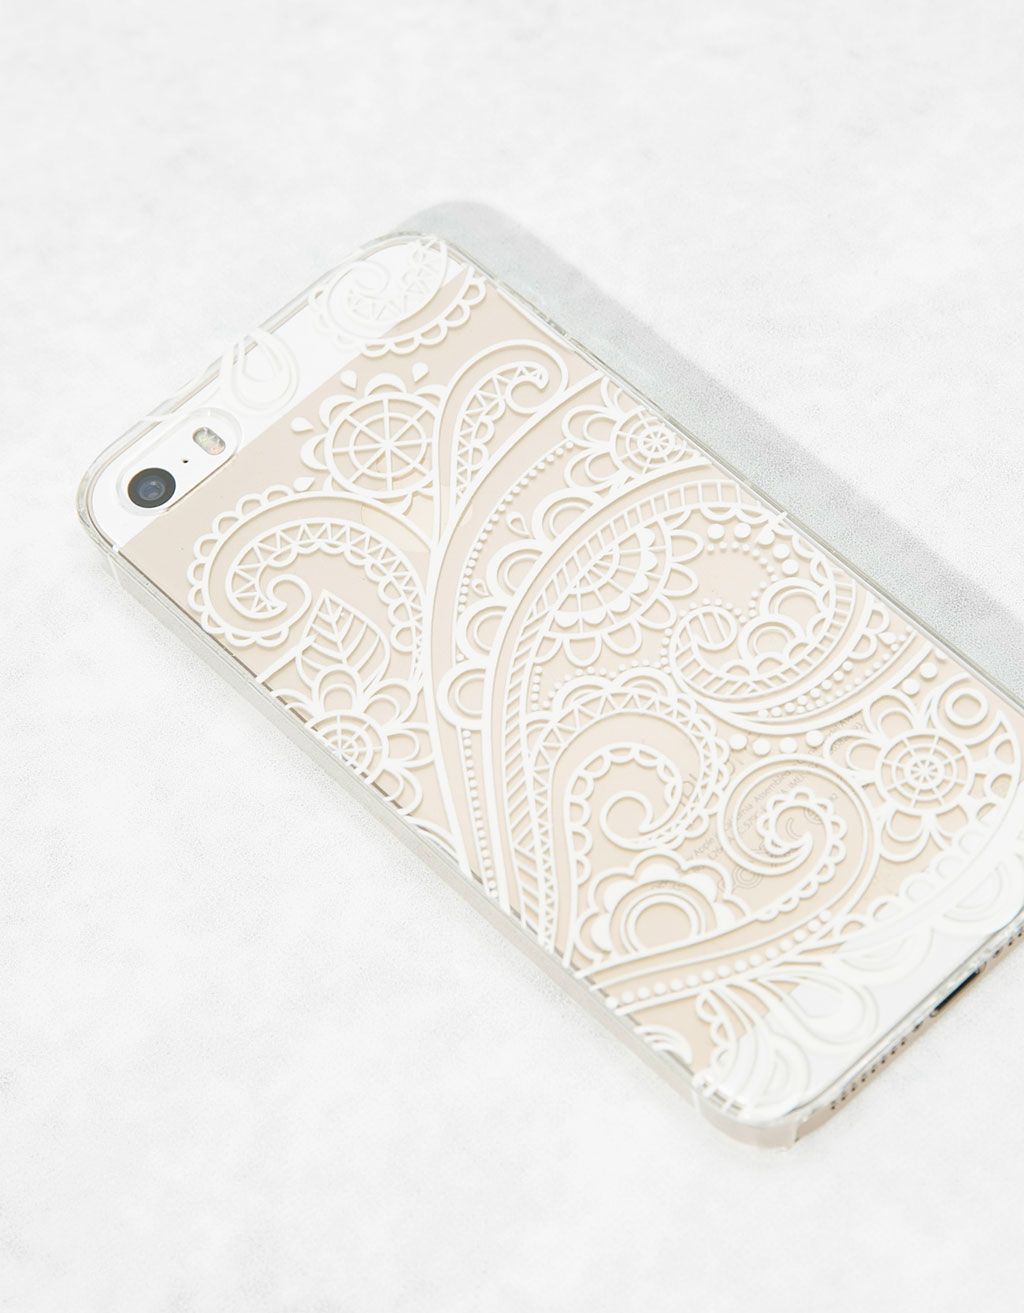 ef3b6f6dcaf Carcasa relieve blanco Iphone 5/5s - Accesorios tablet & móvil - Bershka  España